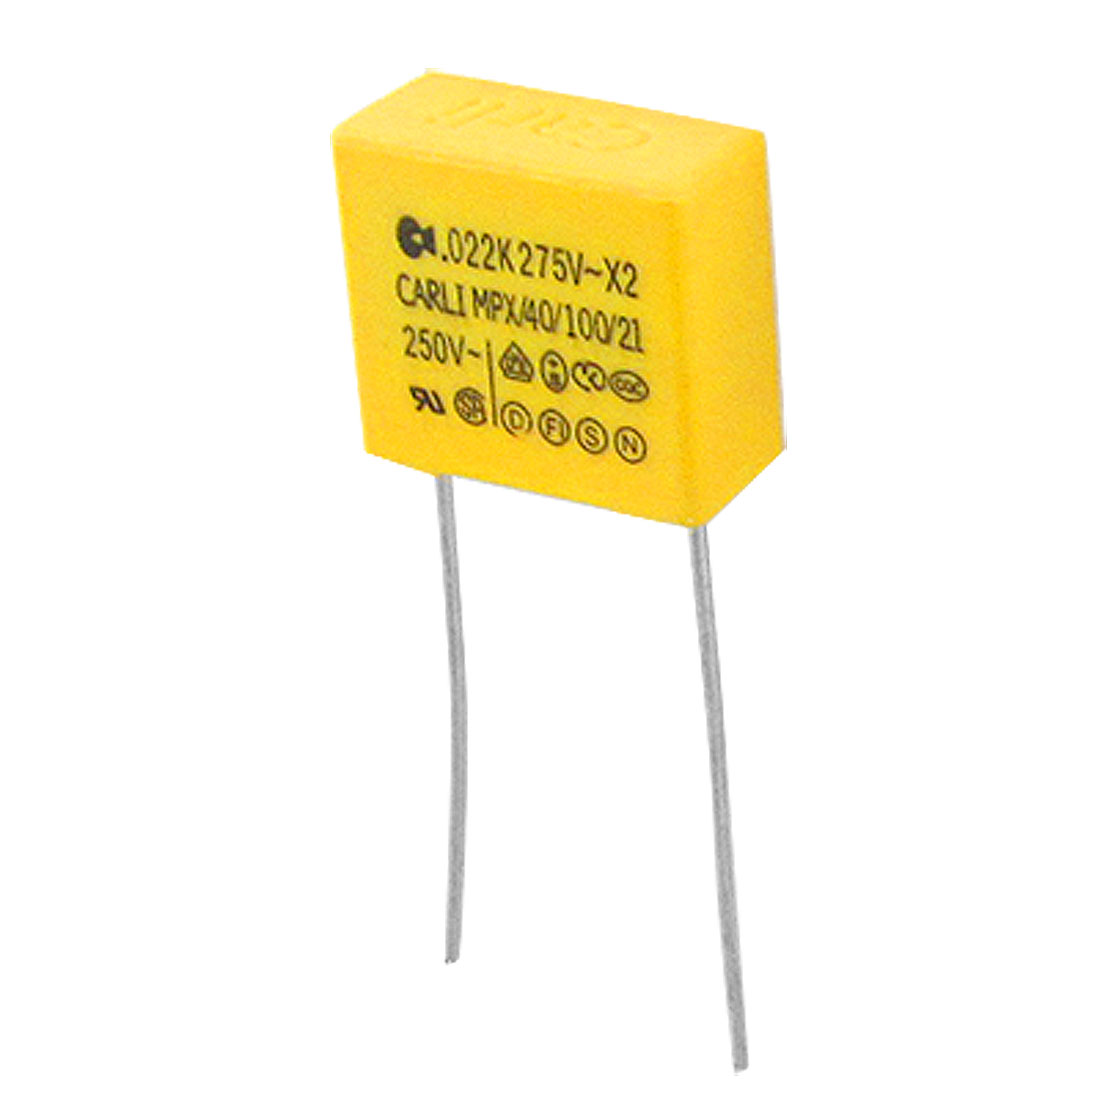 10pcs 0.022uF 22nF 250V 10% Polypropylene Safety Capacitor MPX